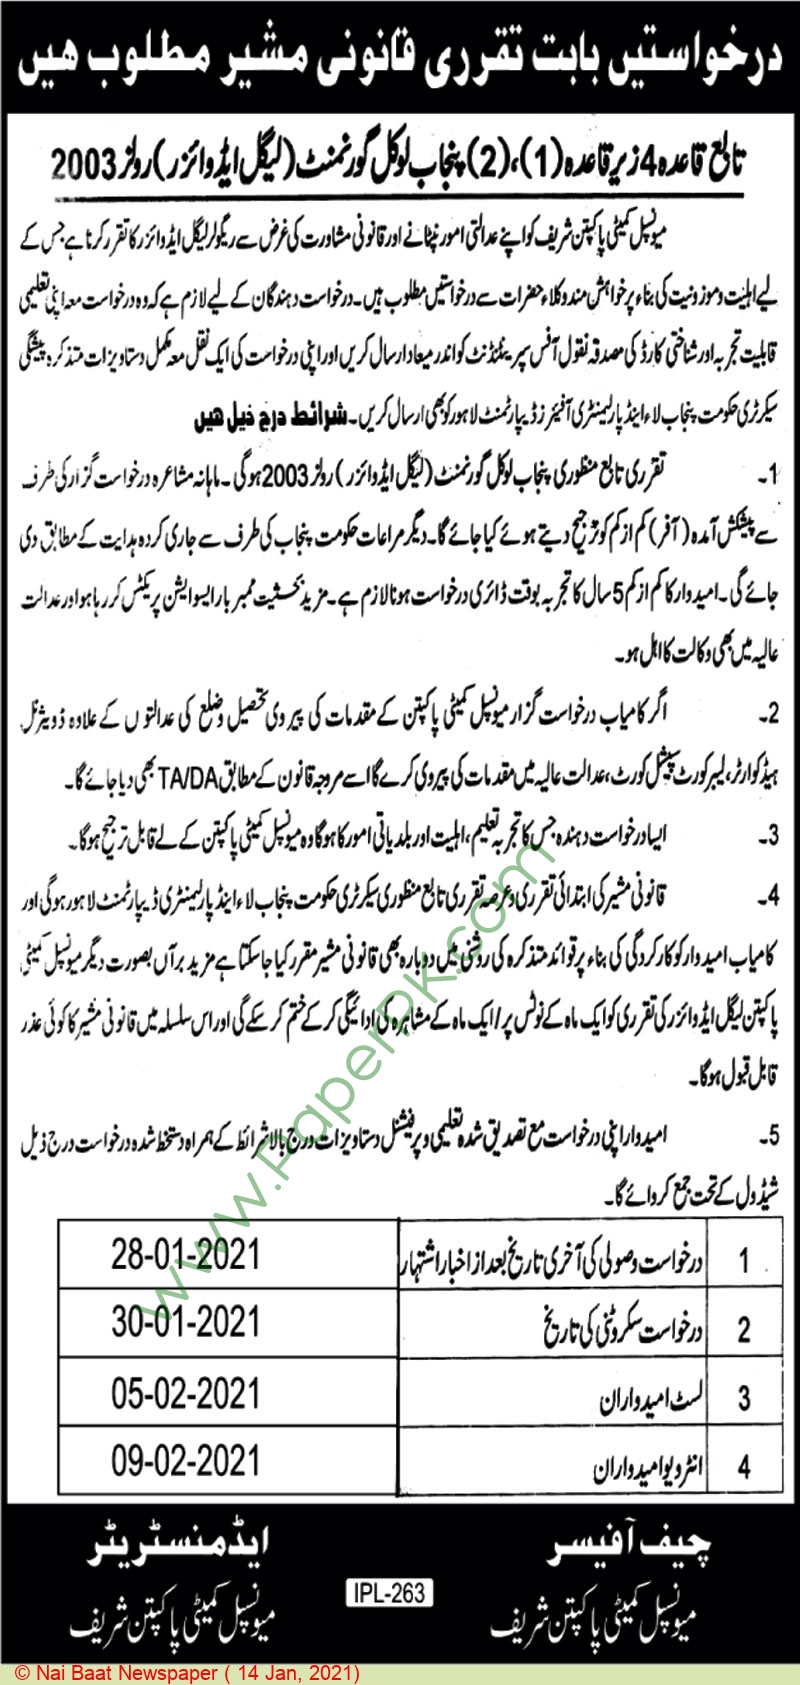 Municipal Committee Pakpattan Sharif Jobs For Legal Advisor advertisemet in newspaper on January 14,2021